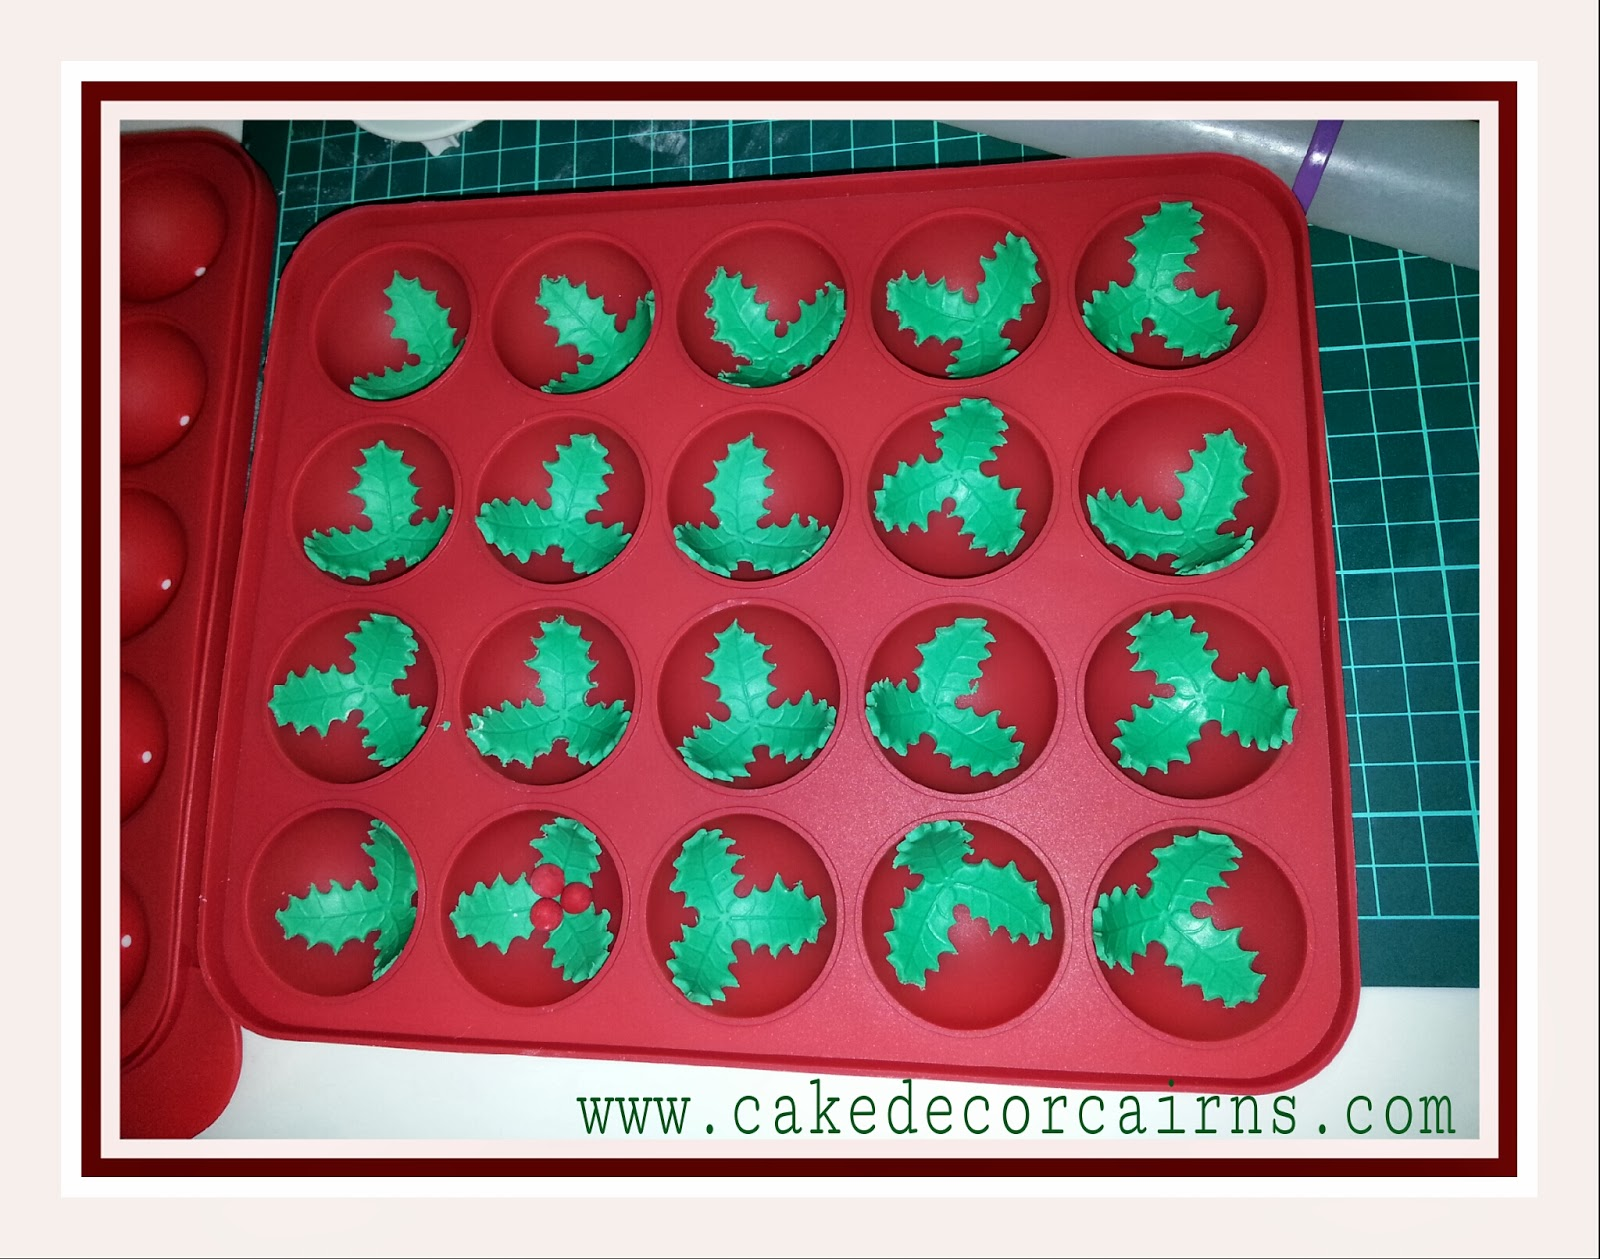 Cake decor in cairns cheap fondant gumpaste flower former other uses for cake pop pans silicone izmirmasajfo